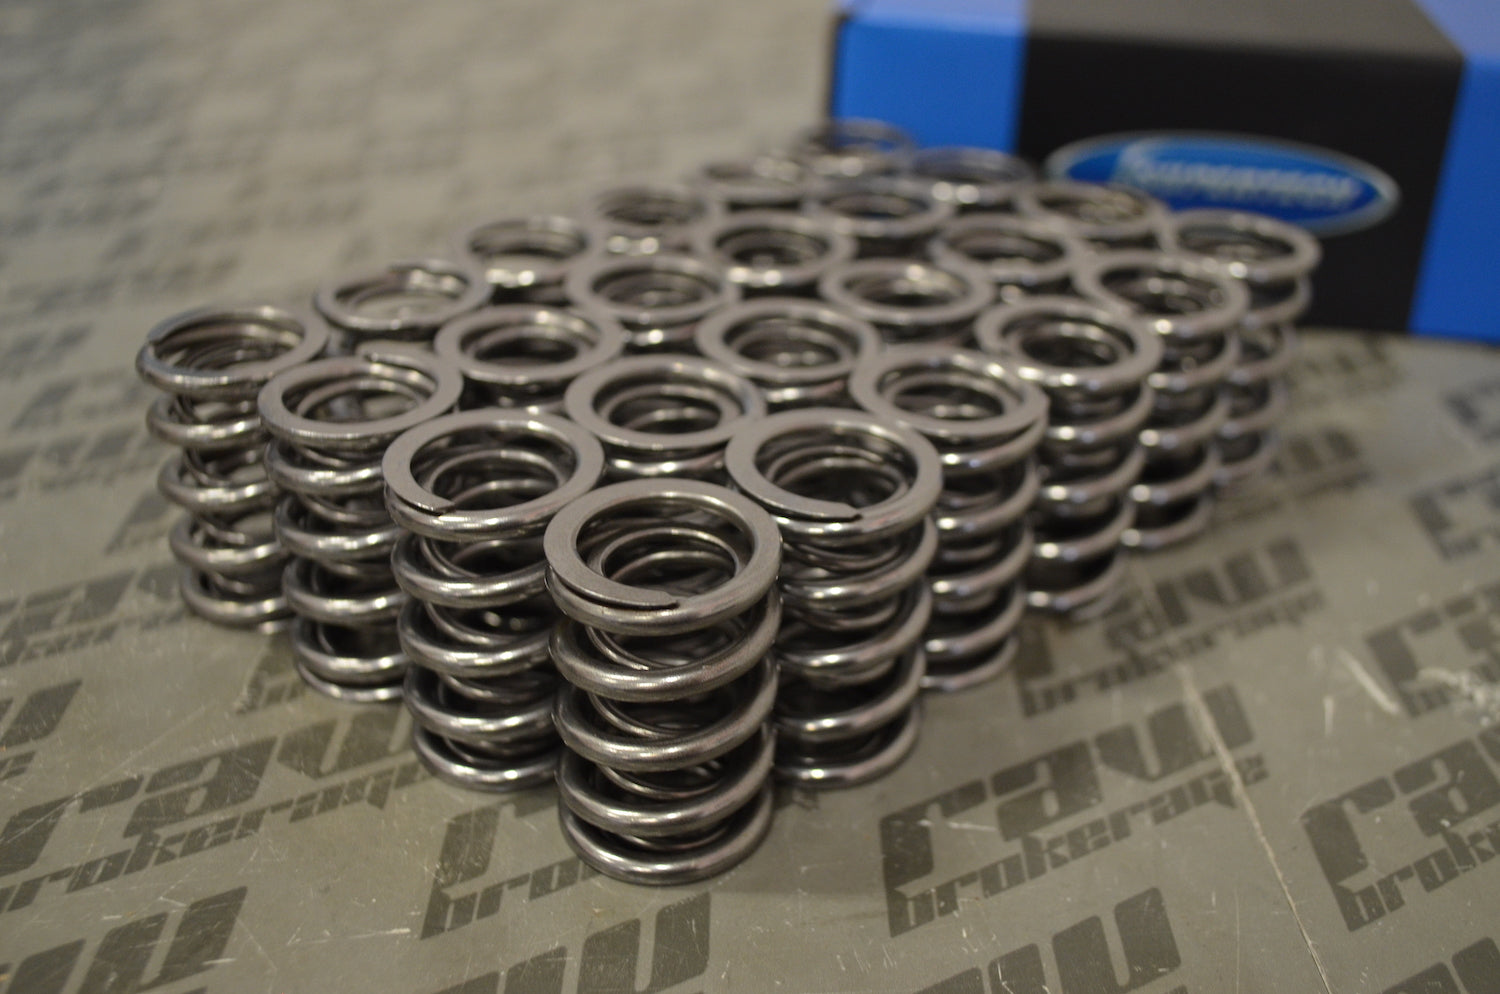 Supertech SPR-TS1015-RB26 Dual Springs; Outer Spring 27.5mm OD / 20mm ID; Inner Spring 20mm OD / 15.2mm ID; Intake 64lbs@35.0mm